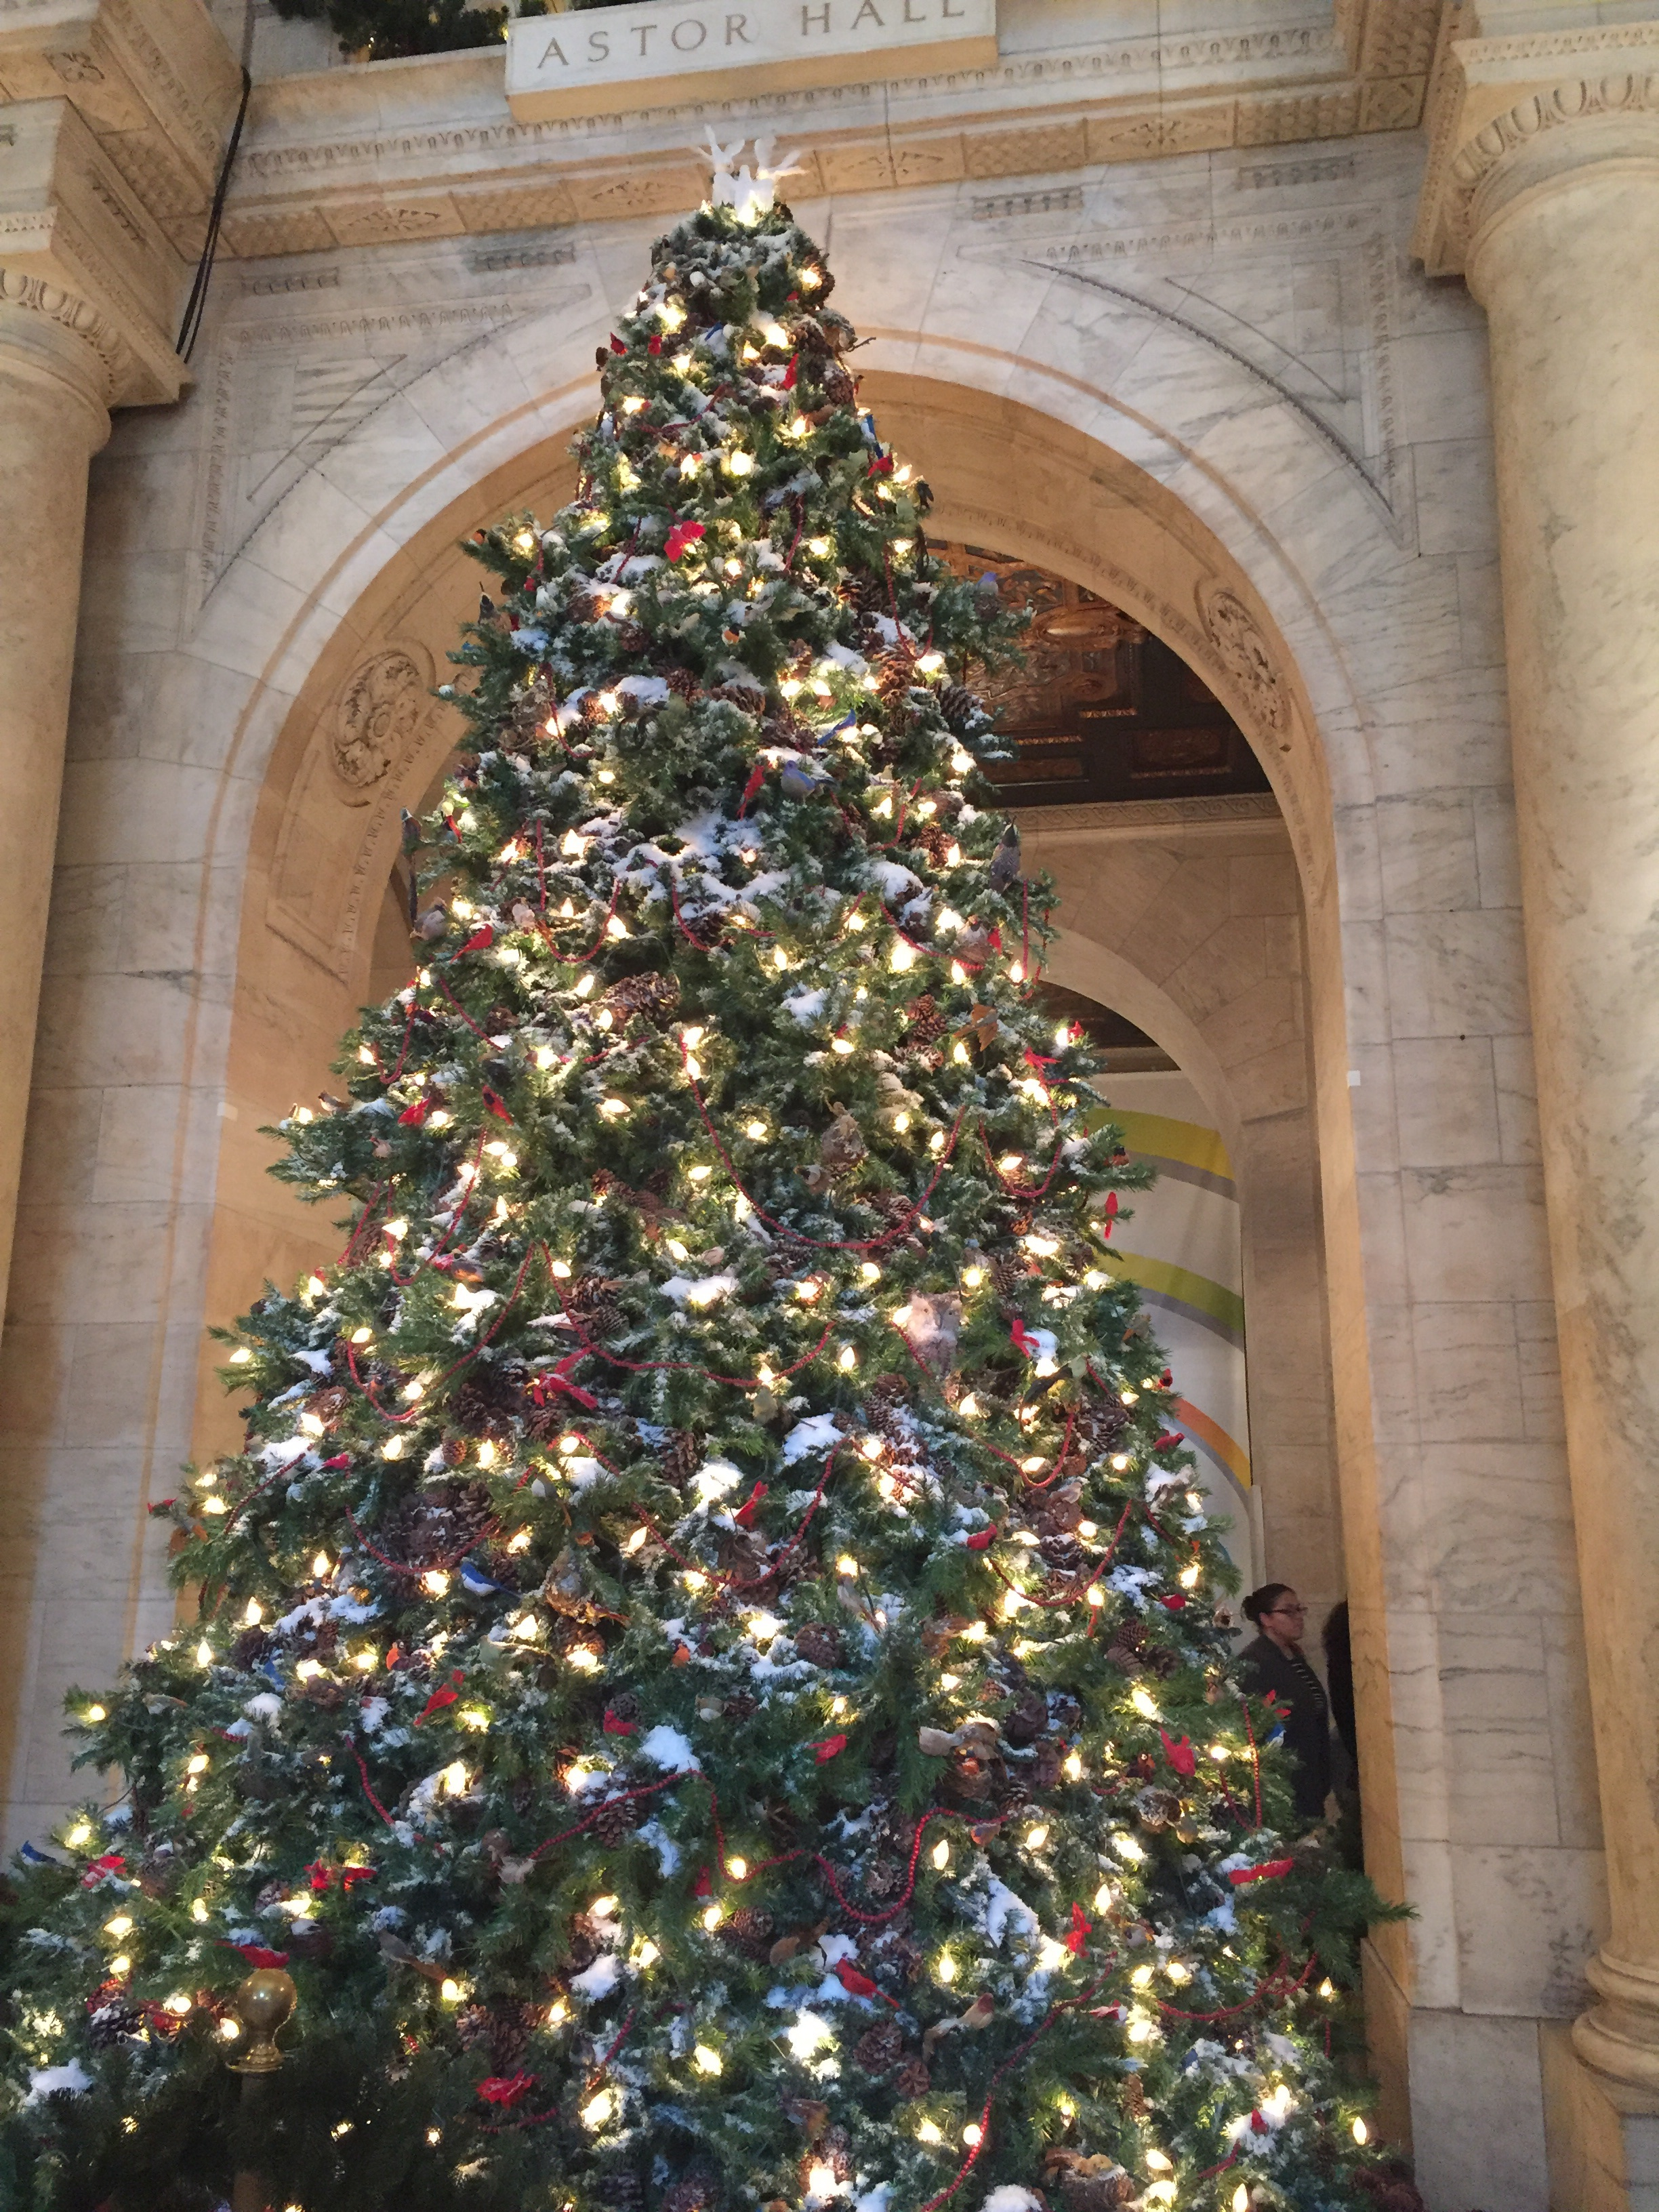 Tree at the New York Public Library